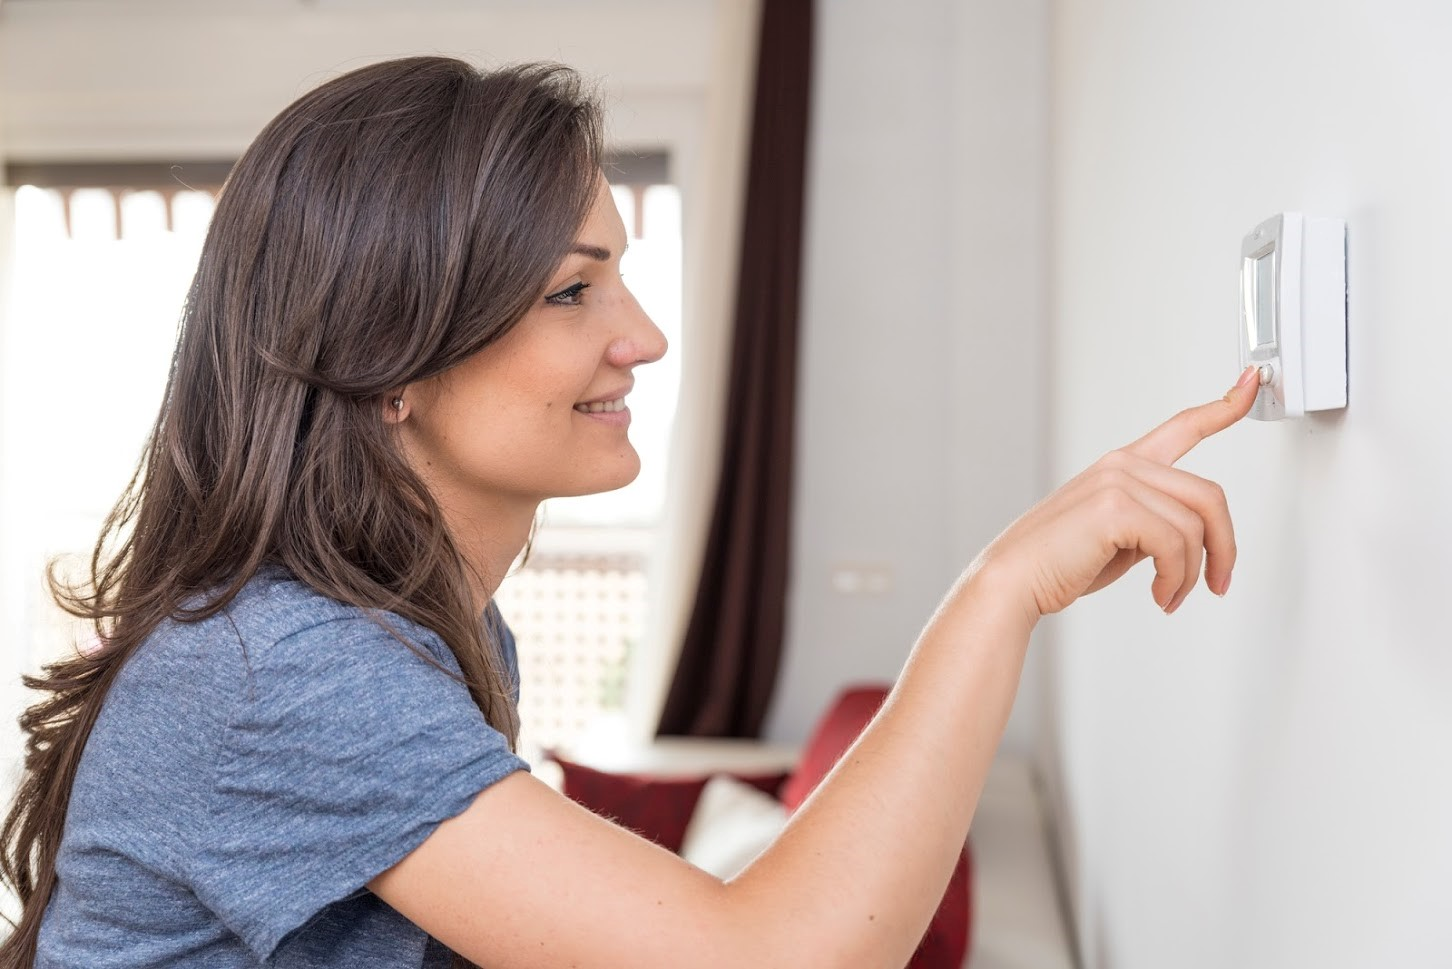 woman using energy efficiency thermostat